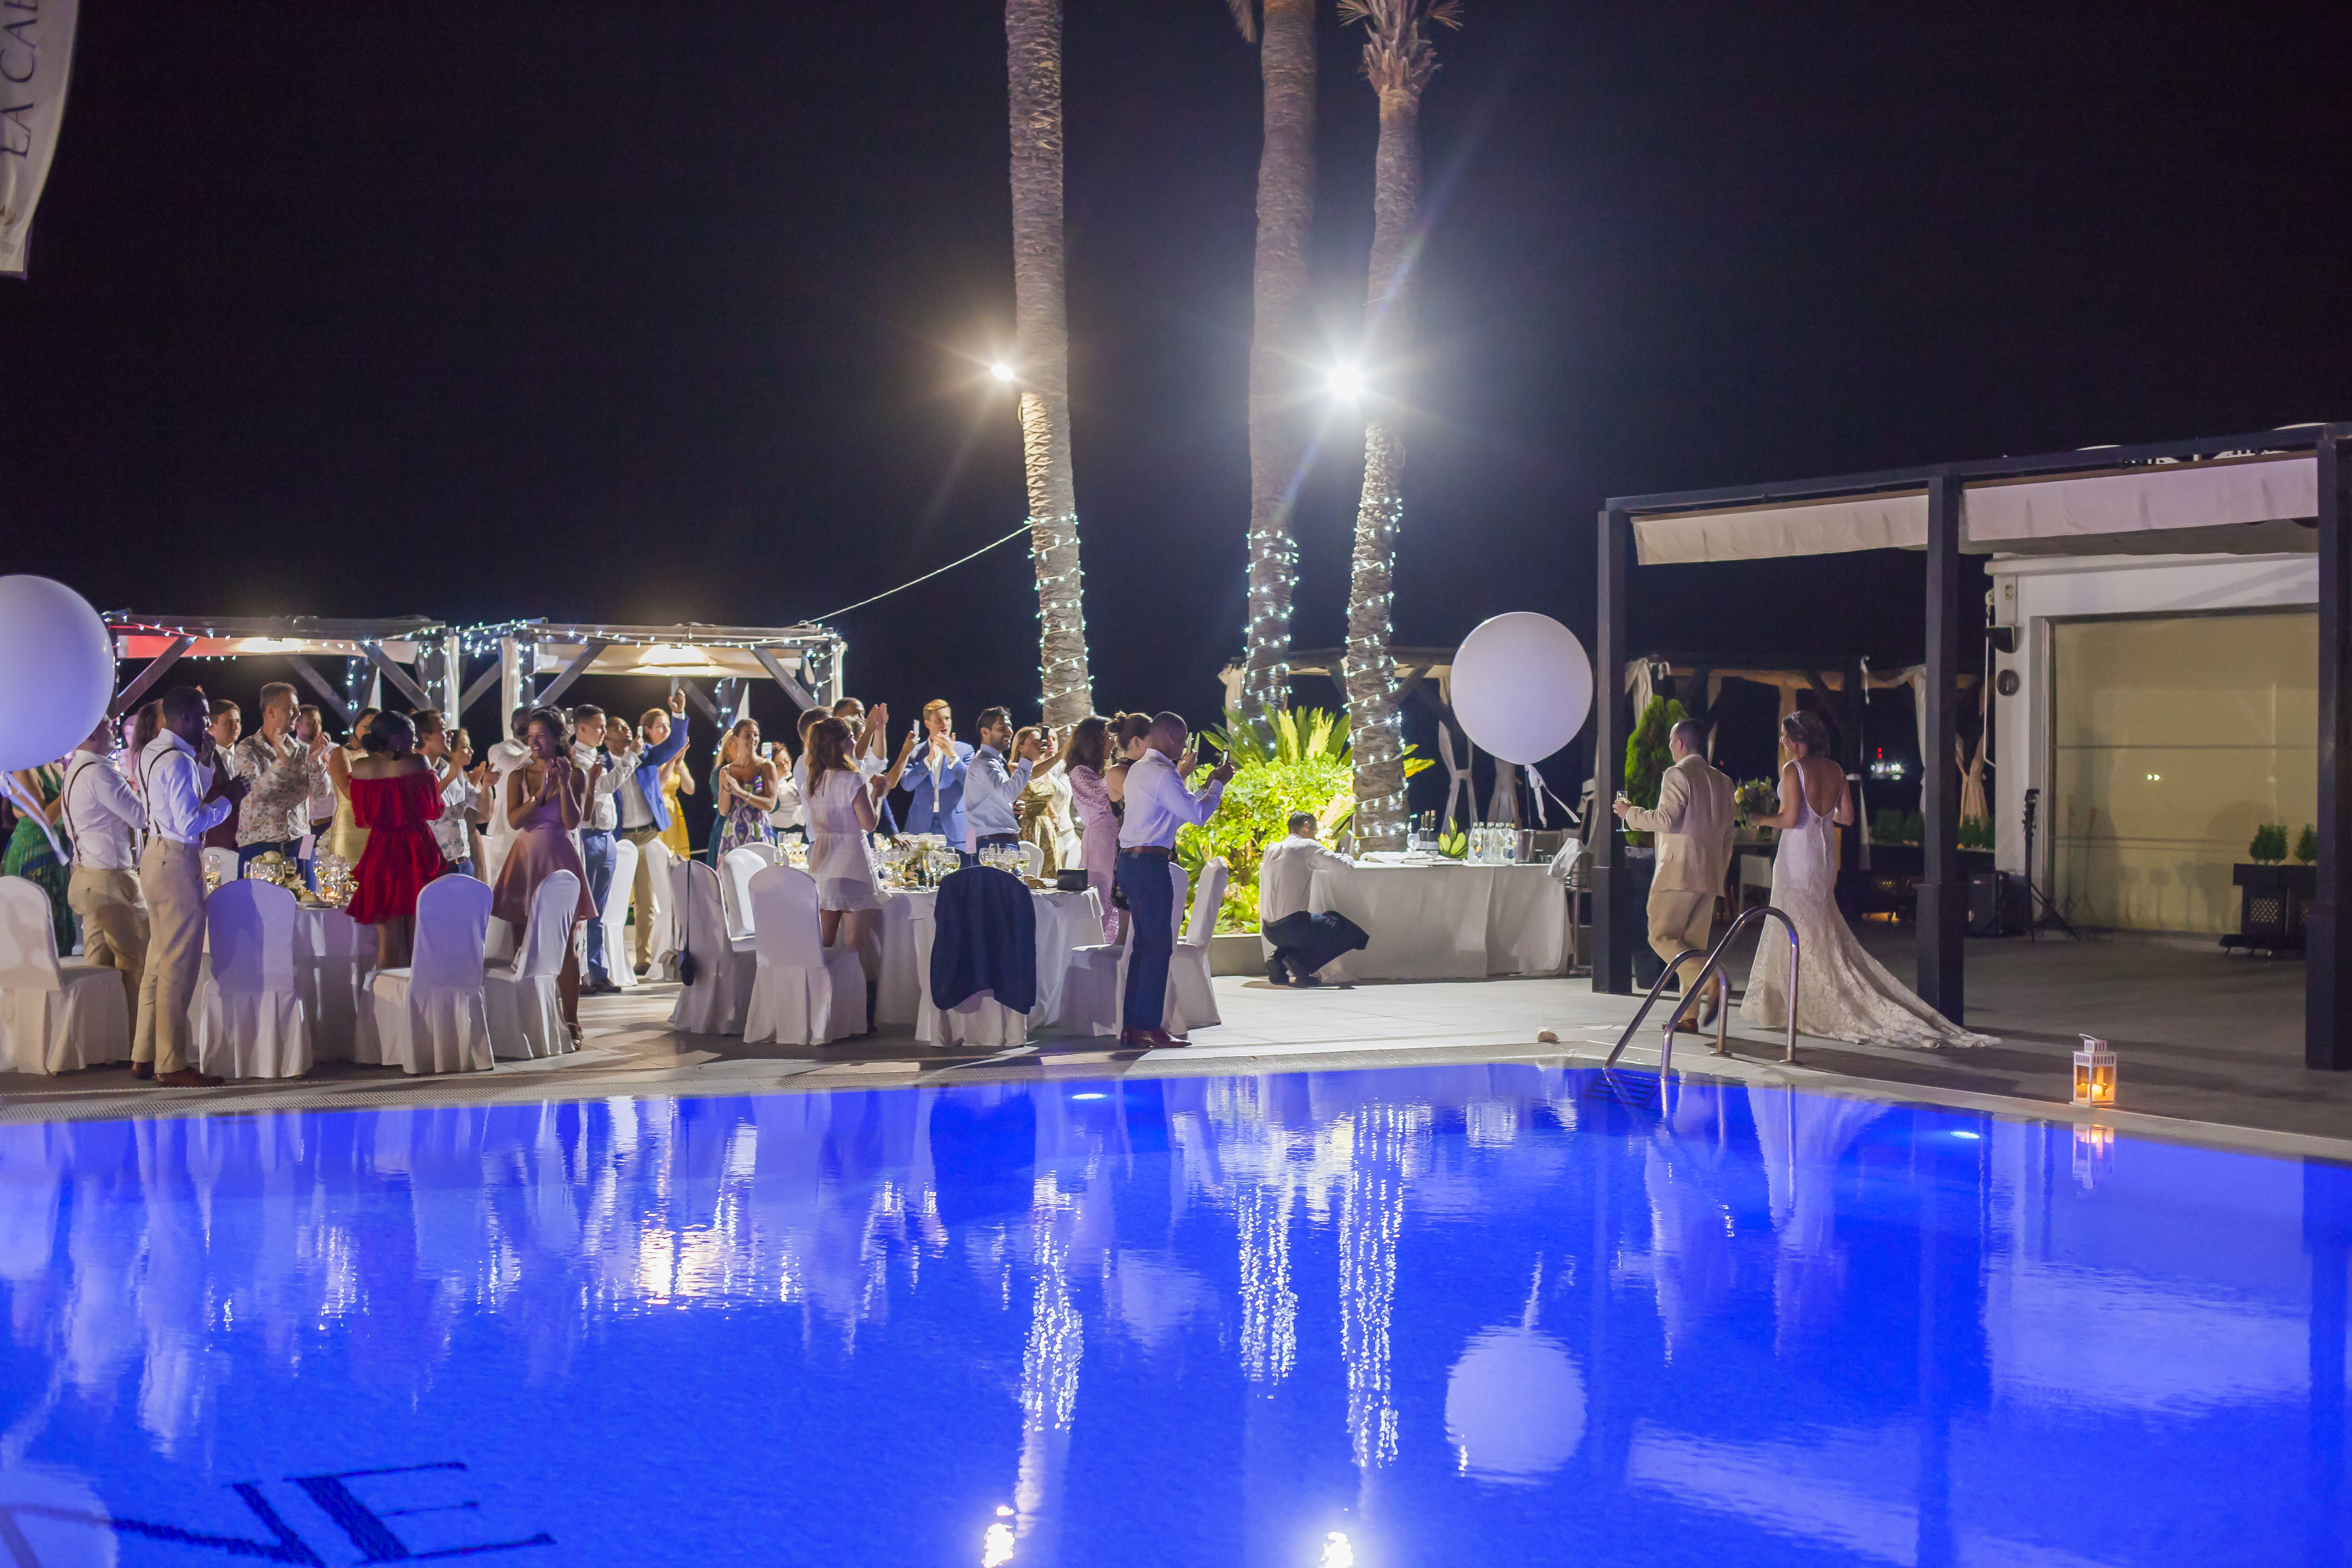 The bridal party and the gorgeous pool area illuminated at night